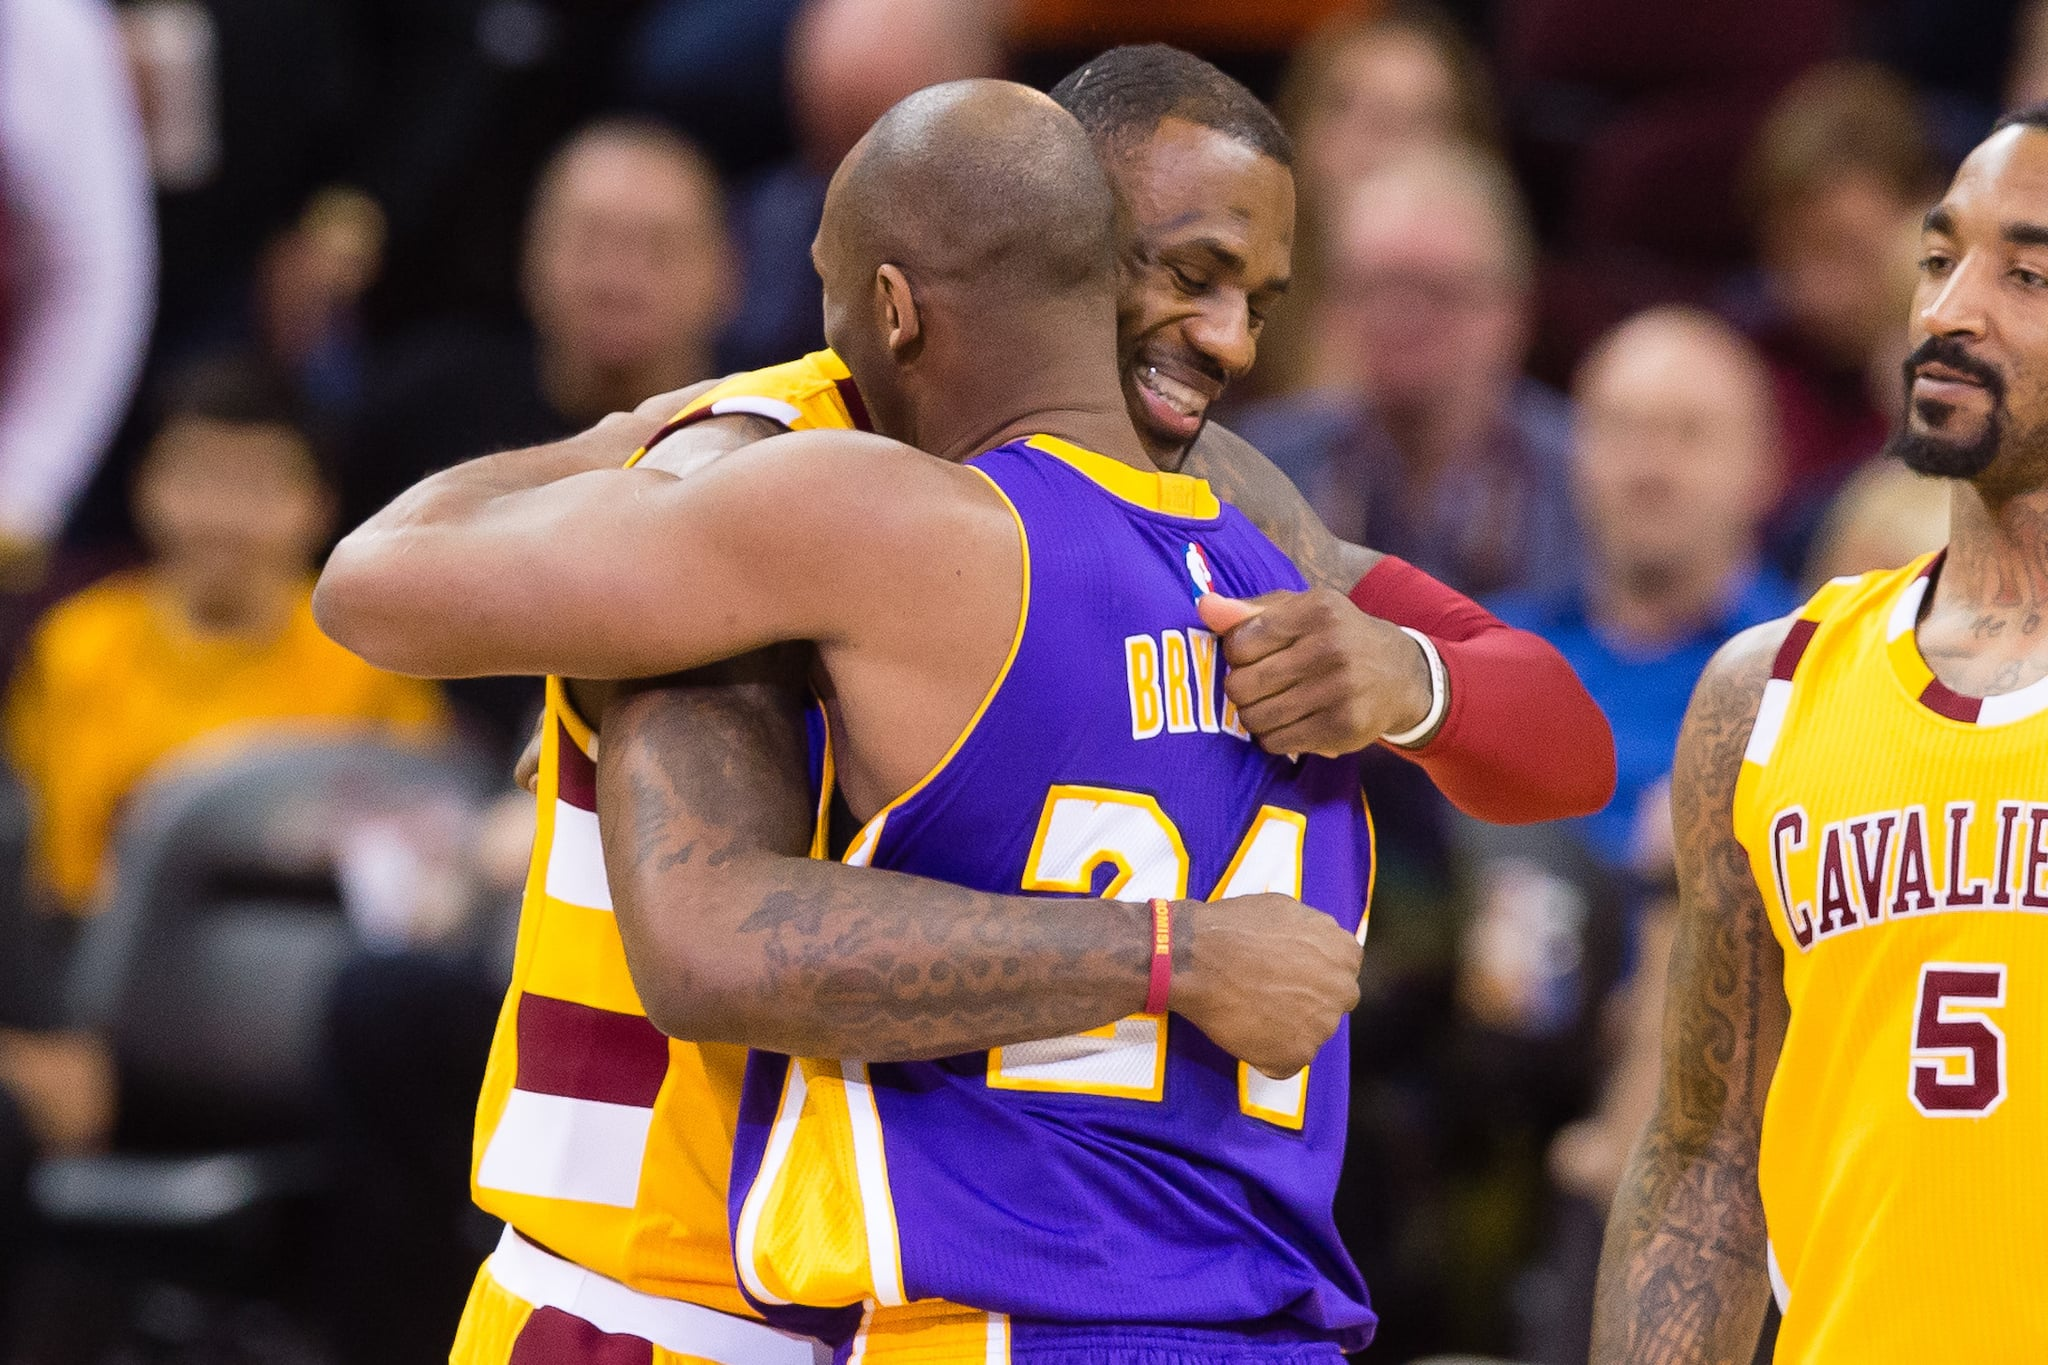 CLEVELAND, OH - FEBRUARY 10: LeBron James #23 of the Cleveland Cavaliers greets Kobe Bryant #24 of the Los Angeles Lakers during the first half at Quicken Loans Arena on February 10, 2016 in Cleveland, Ohio. NOTE TO USER: User expressly acknowledges and agrees that, by downloading and/or using this photograph, user is consenting to the terms and conditions of the Getty Images Licence Agreement. Mandatory copyright notice. (Photo by Jason Miller/Getty Images) *** Local Caption ***LeBron James; Kobe Bryant